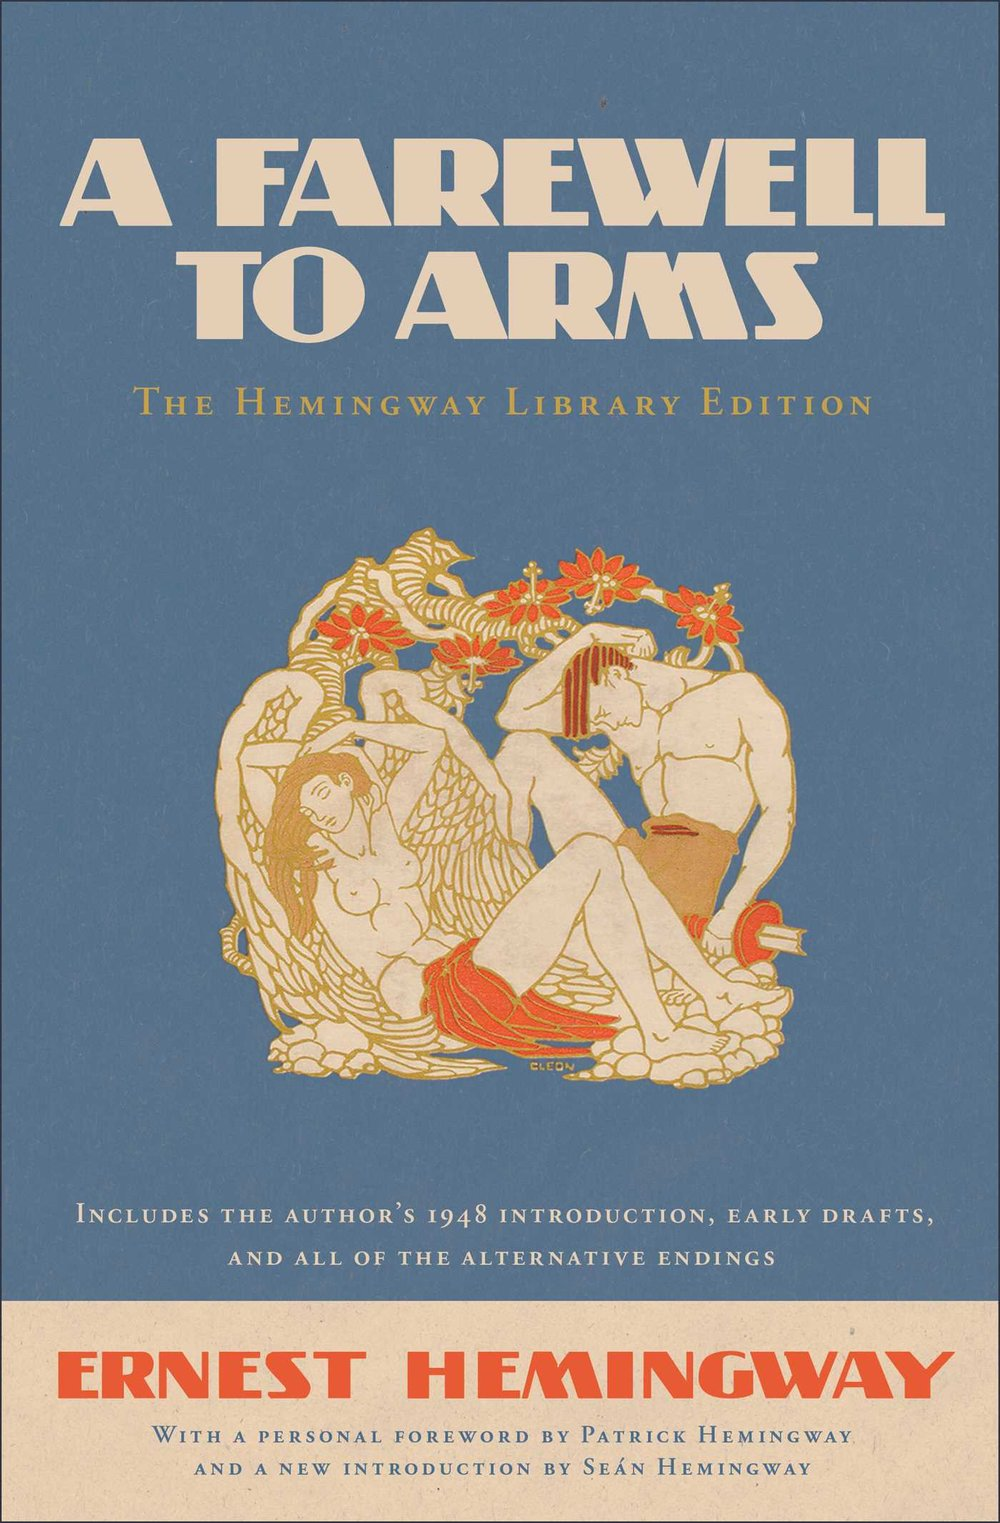 a farewell to arms by ernest hemingway.jpg